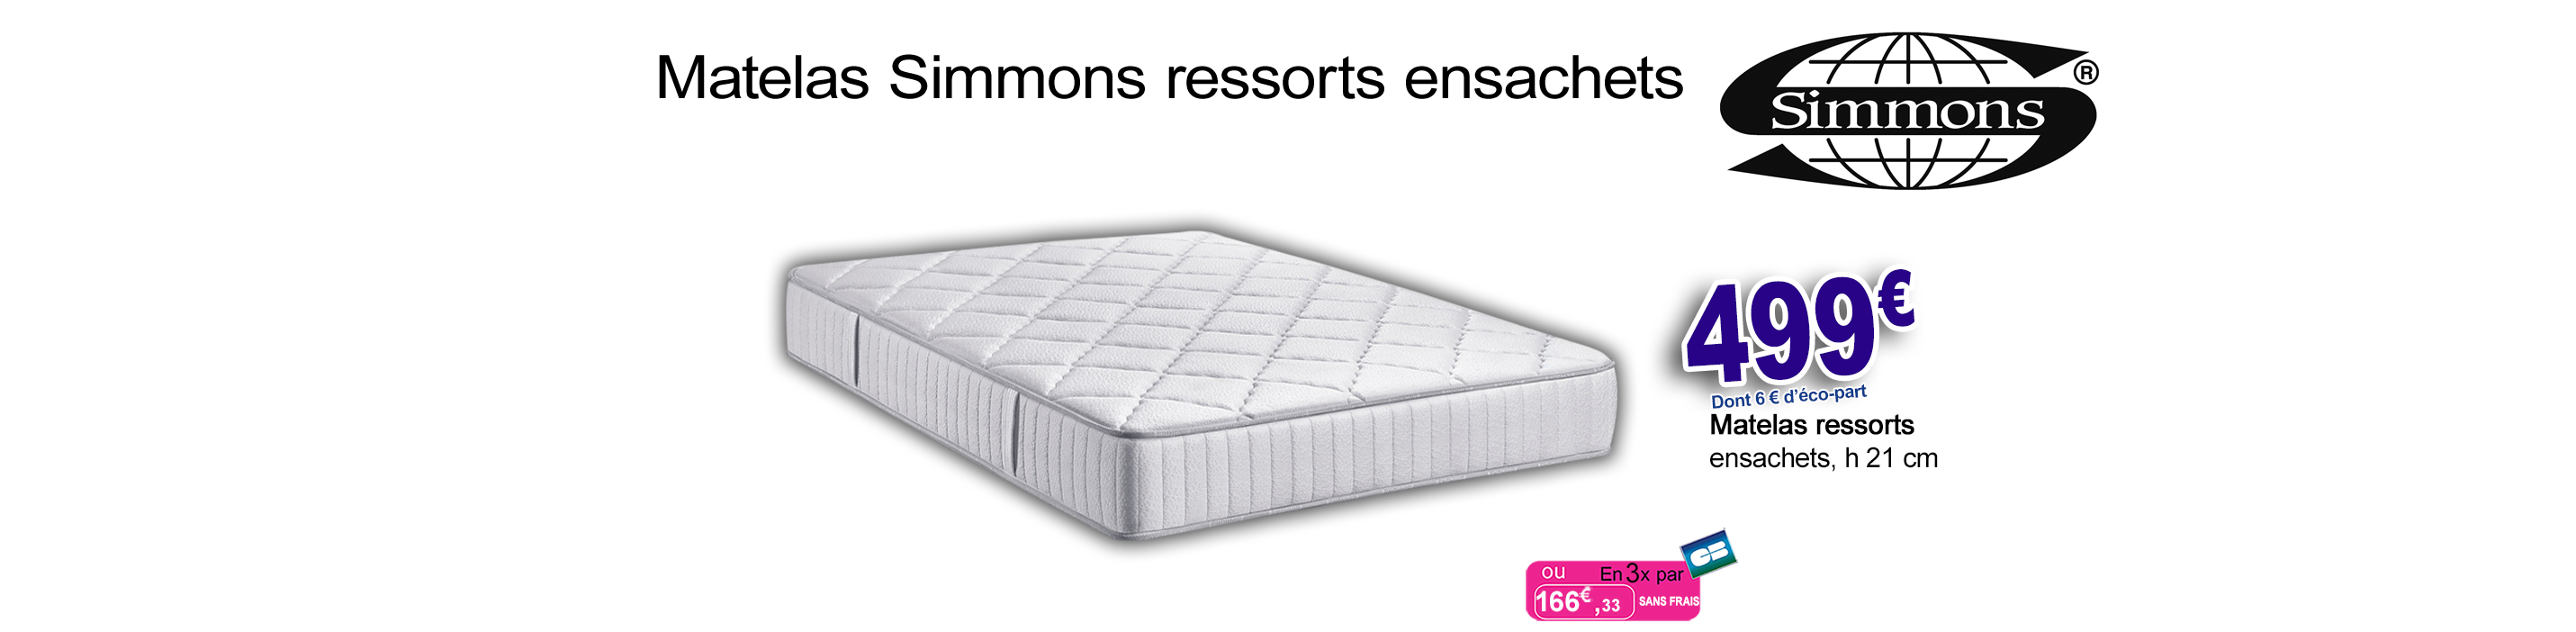 Avenue literie boutique literie sp cialiste en matelas - Matelas simmons collection quietude ...